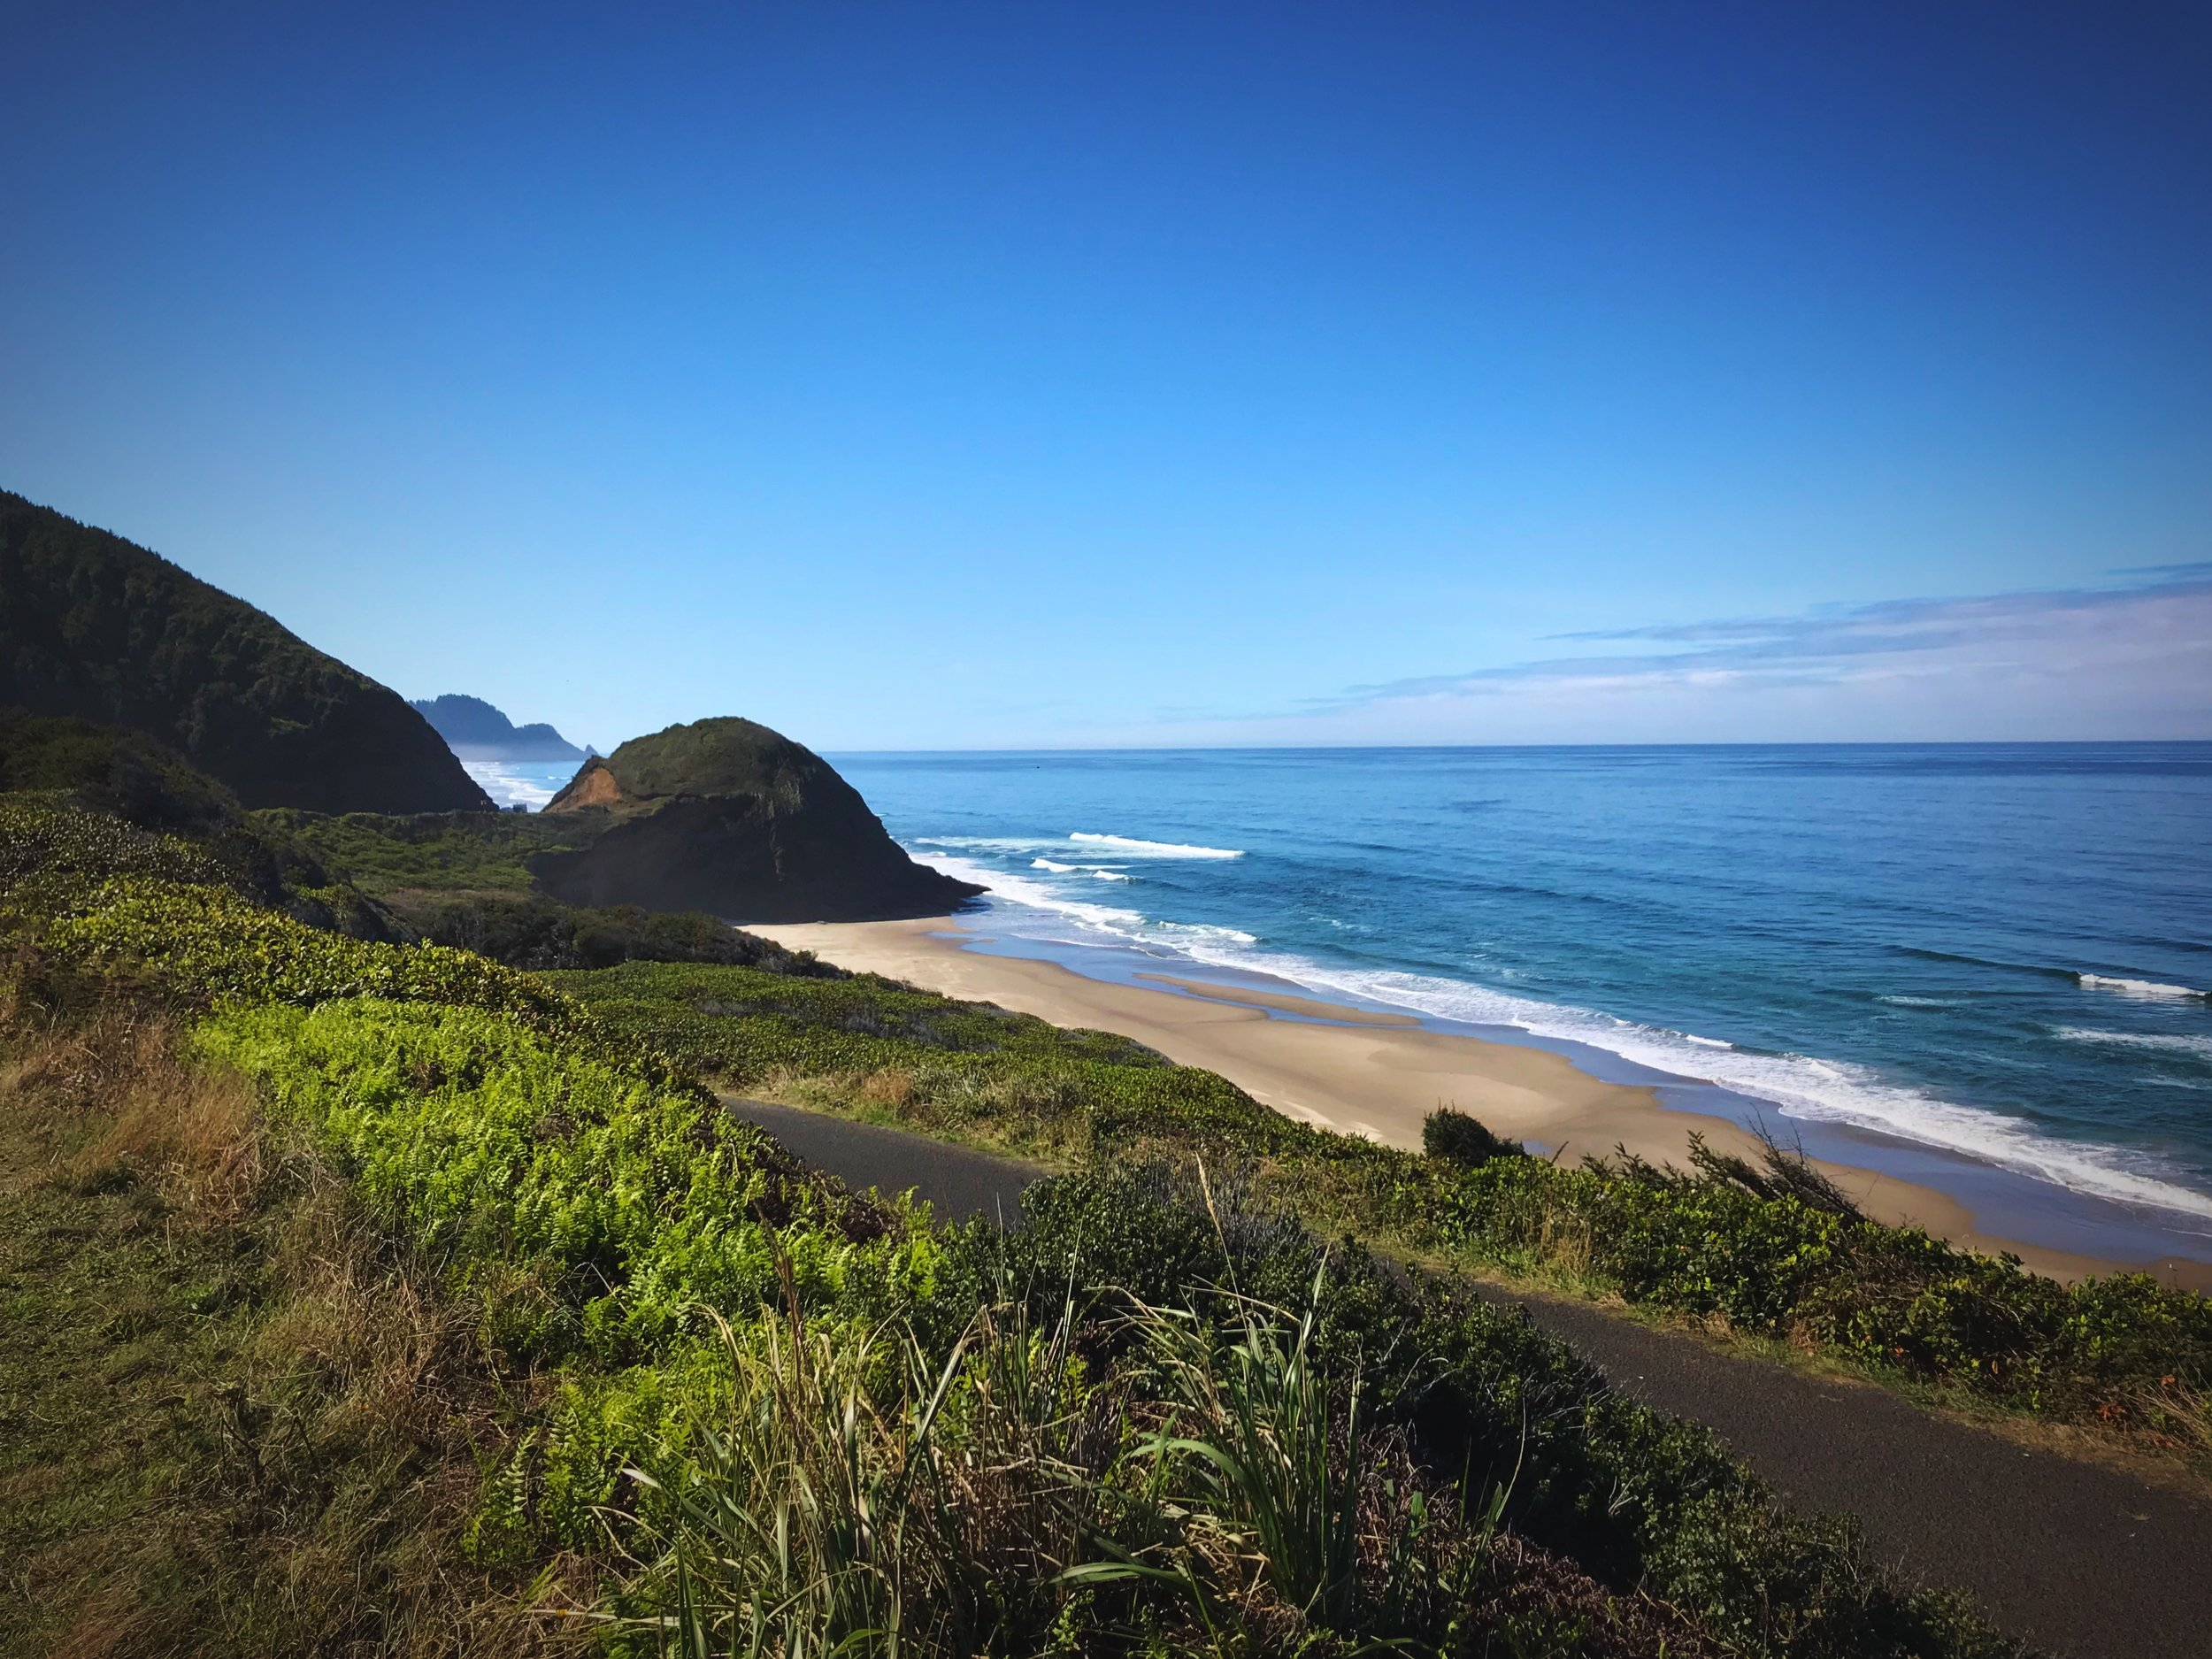 A trail leads you from the cove at the mouth of Cape Creek to the lighthouse on Heceta Head.